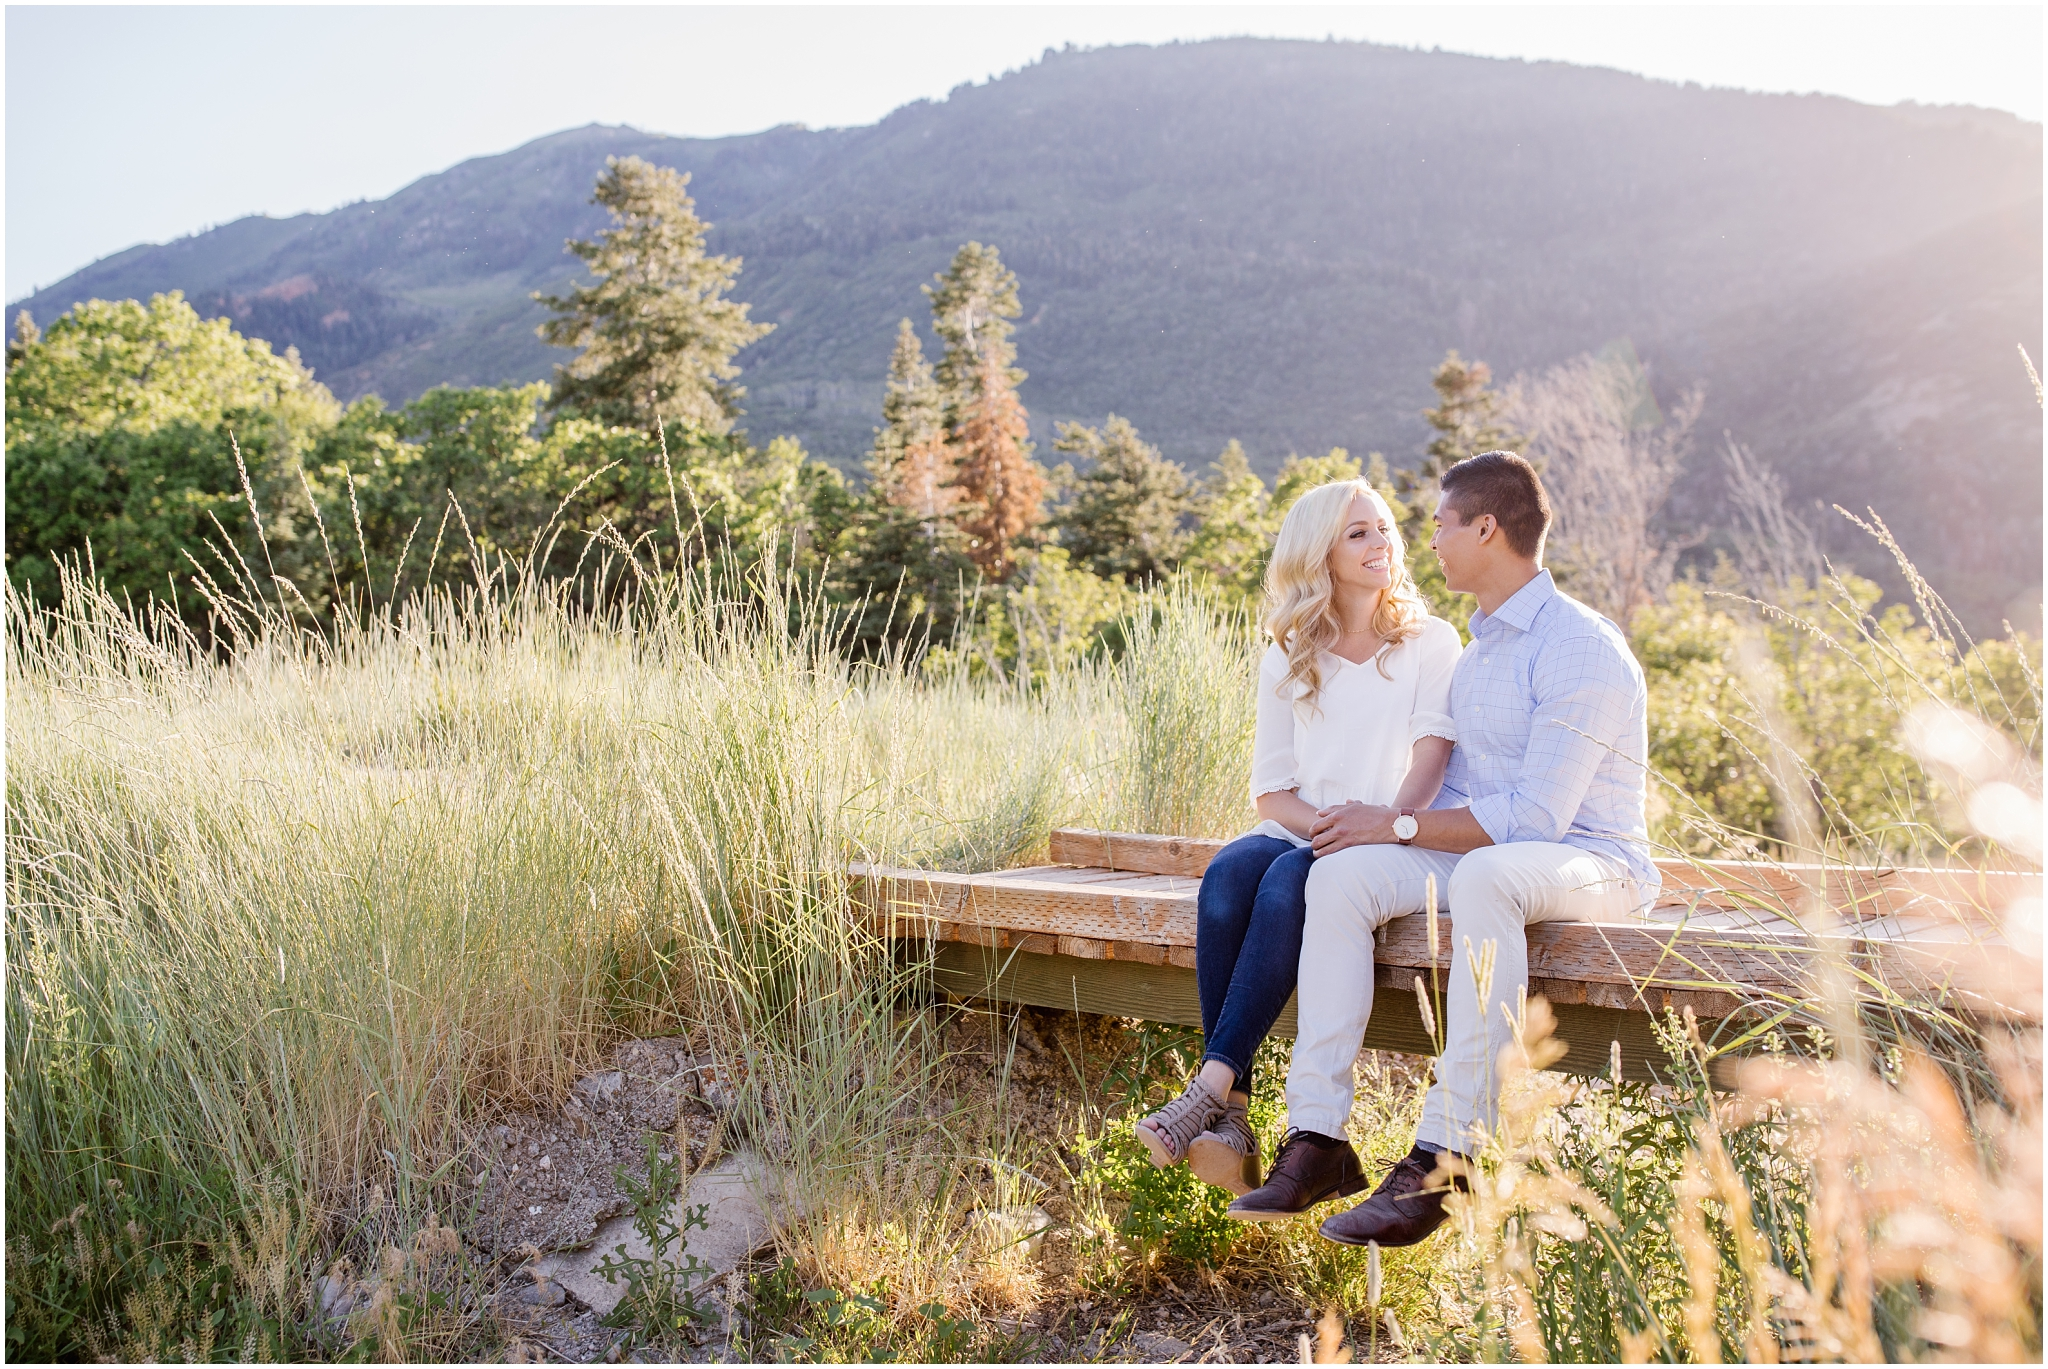 HCengagements-26_Lizzie-B-Imagery-Utah-Wedding-Photographer-Central-Utah-Park-City-Salt-Lake-City-Payson-Canyon-Engagement-Session.jpg